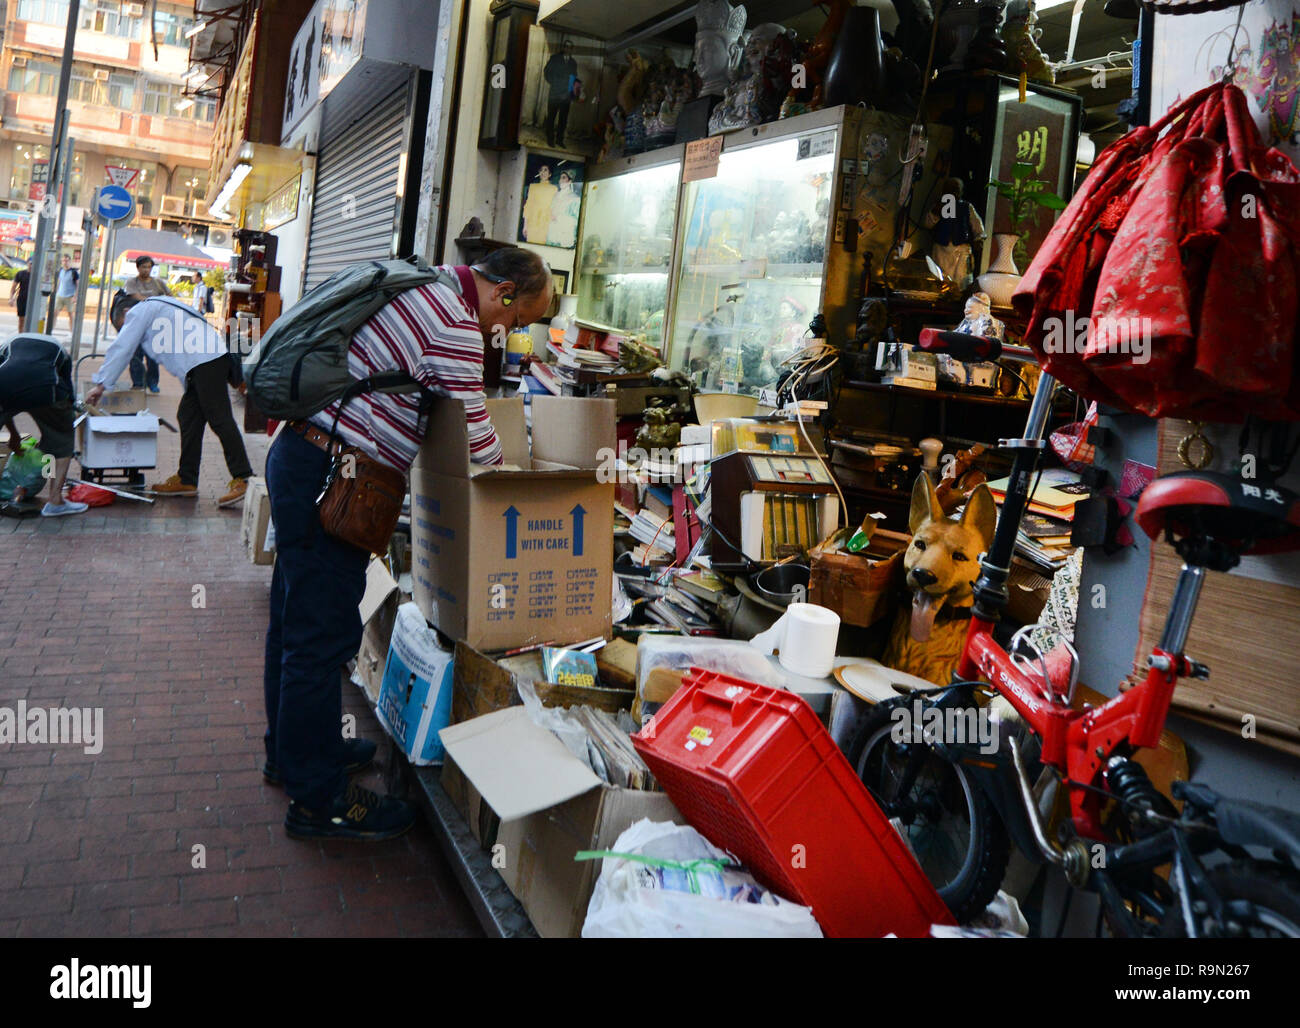 A 2nd hand shop in Mong Kok's vibrant market. - Stock Image